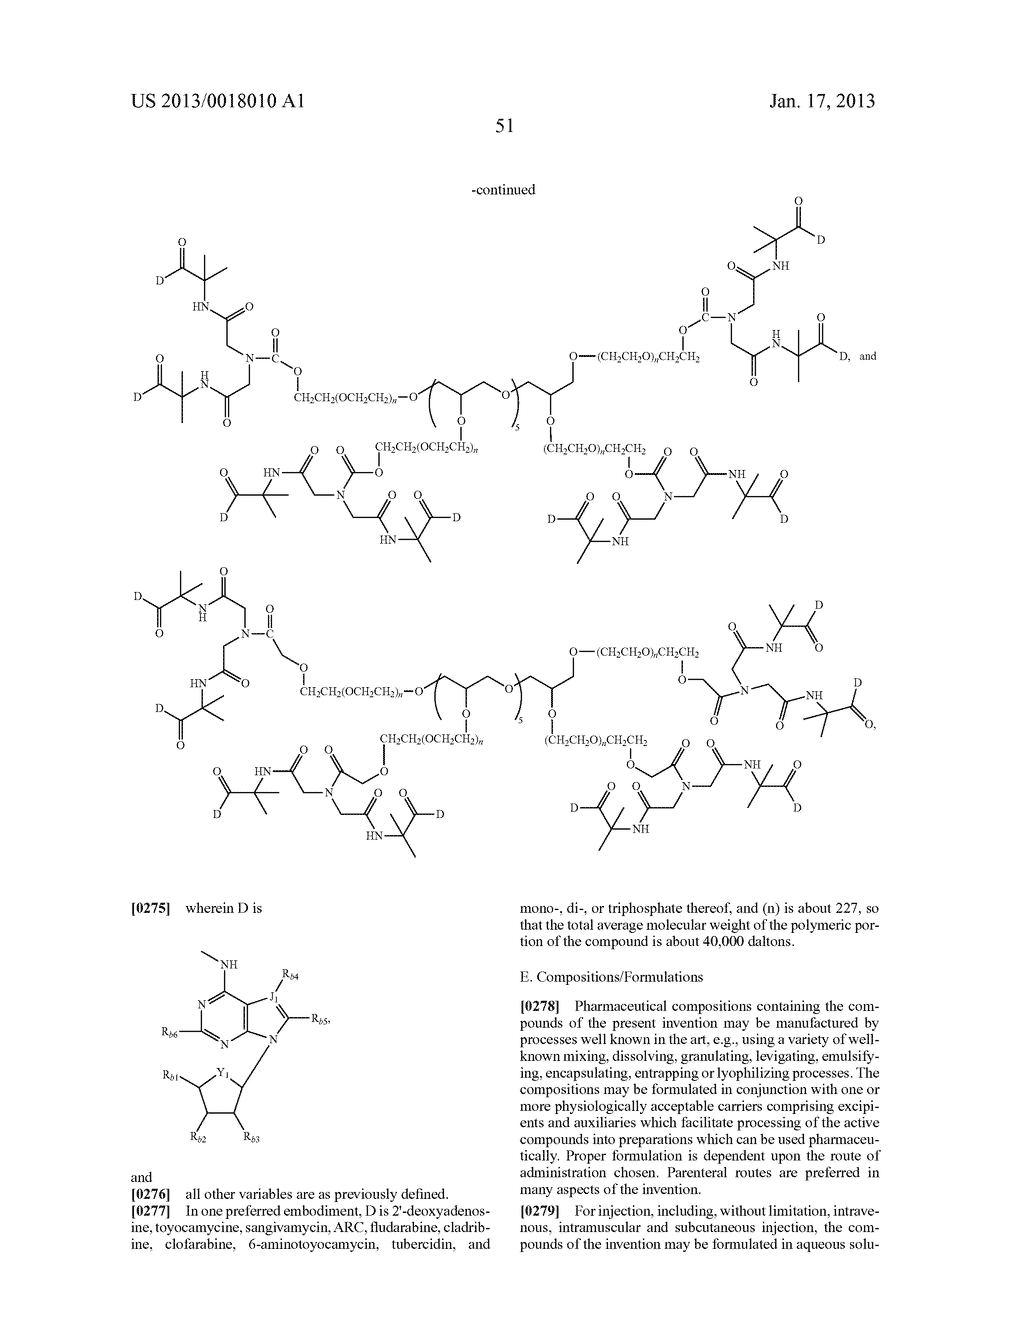 POLYMERIC CONJUGATES OF ADENINE NUCLEOSIDE ANALOGS - diagram, schematic, and image 70